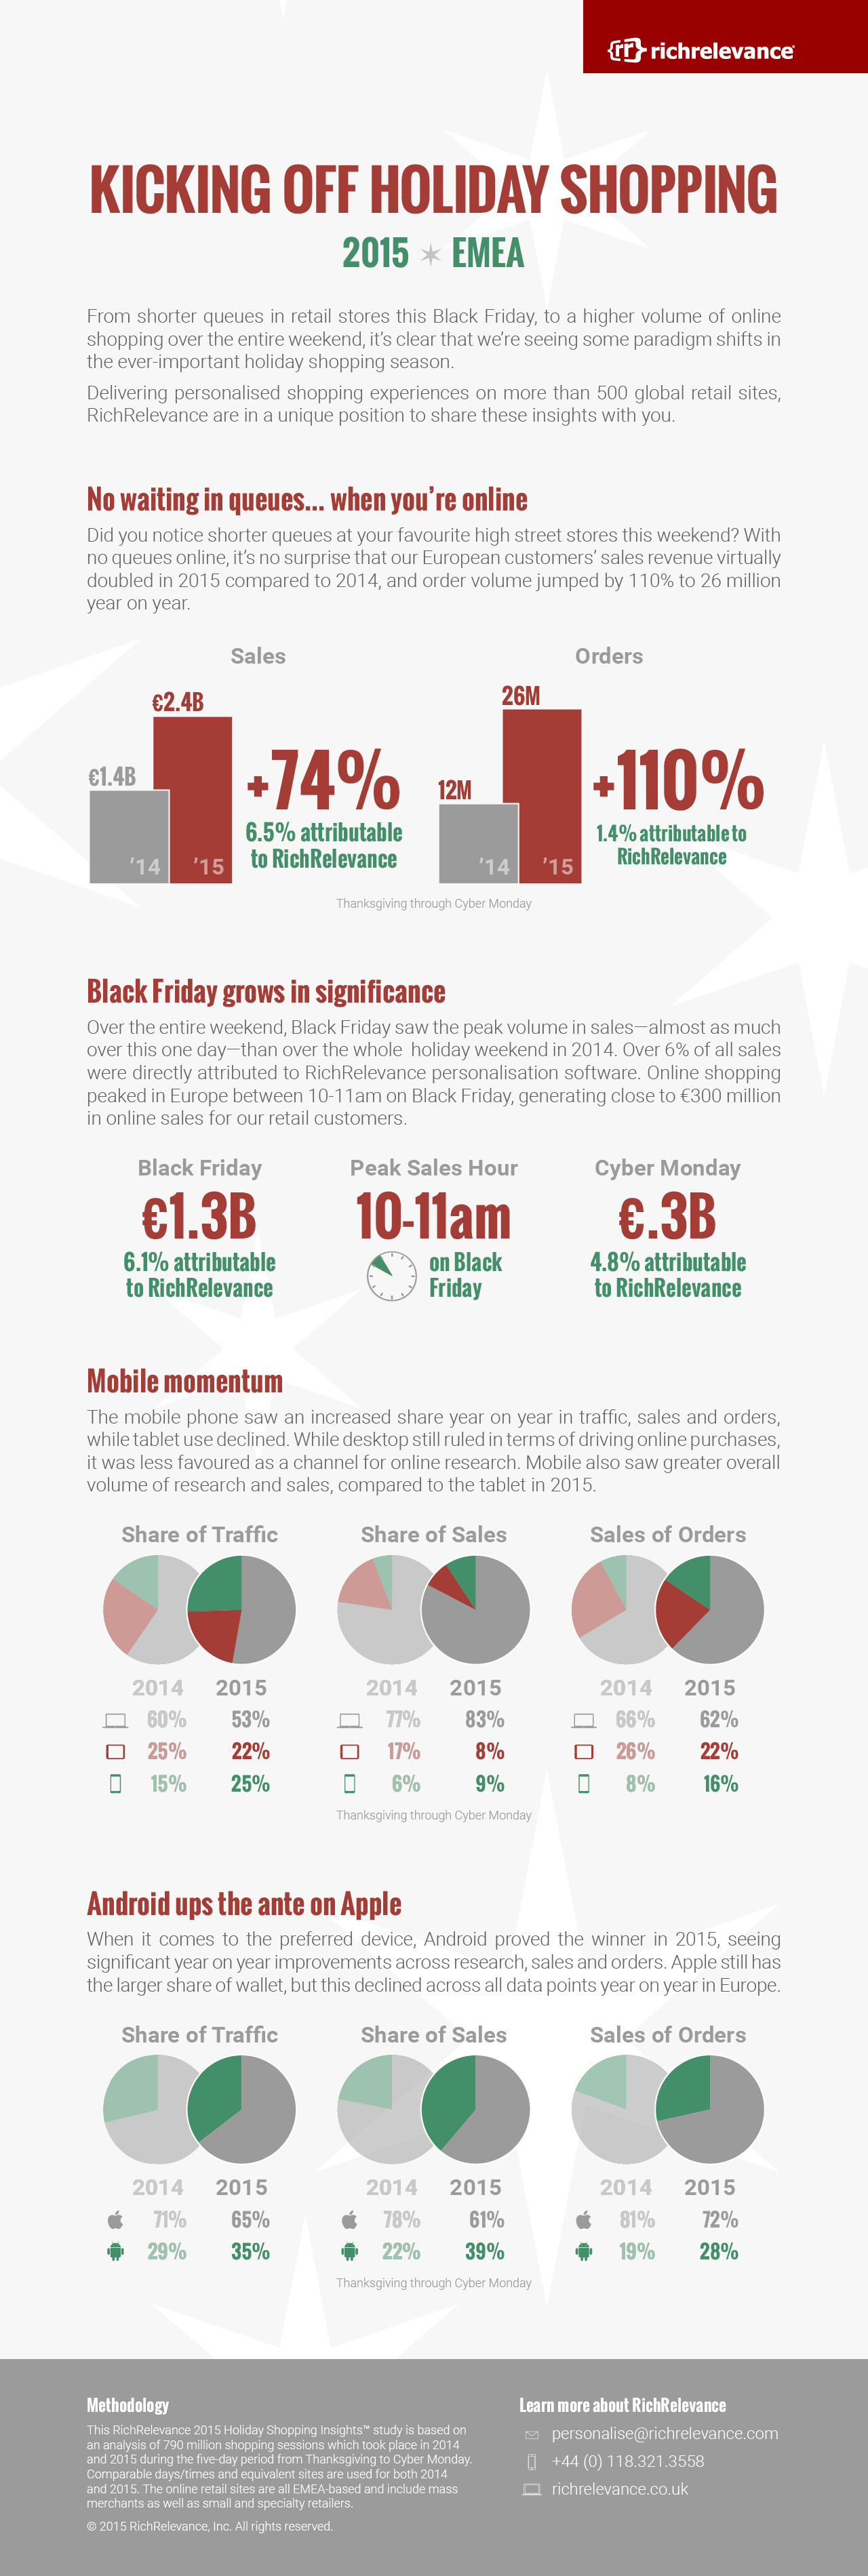 RichRelevance - Kicking Off Holiday Shopping Infographic